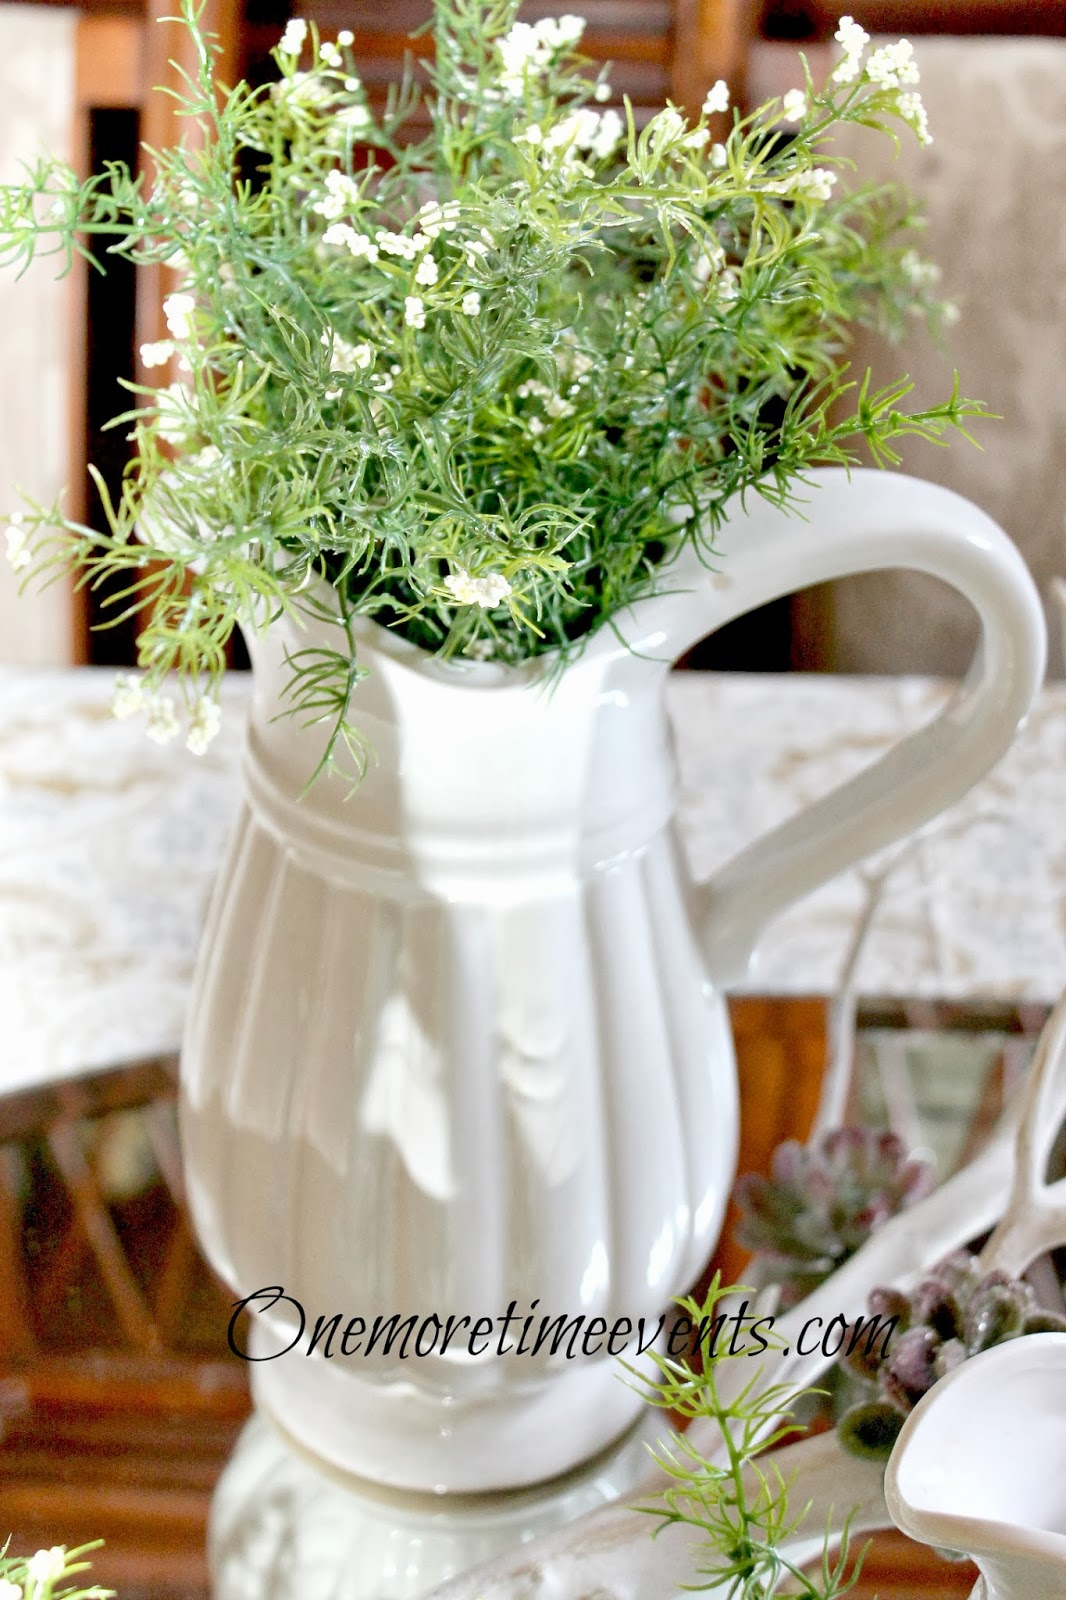 Large white Pitcher filled with greenery at One More Time Events.com